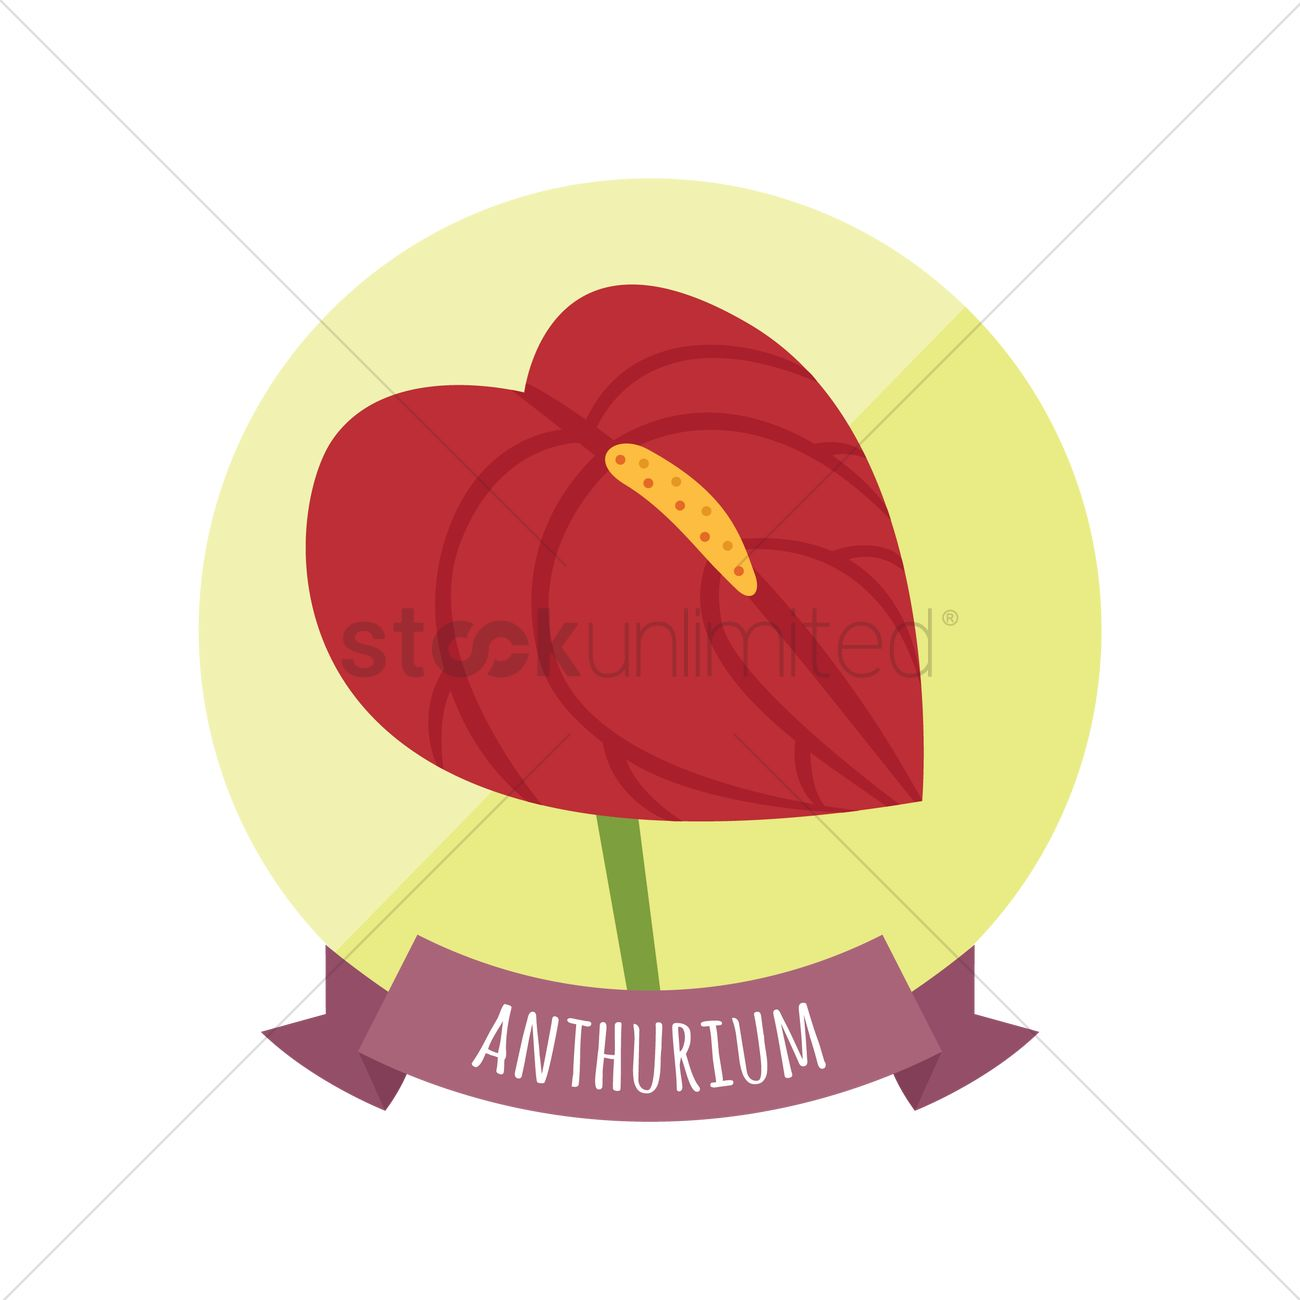 Anthurium svg #19, Download drawings